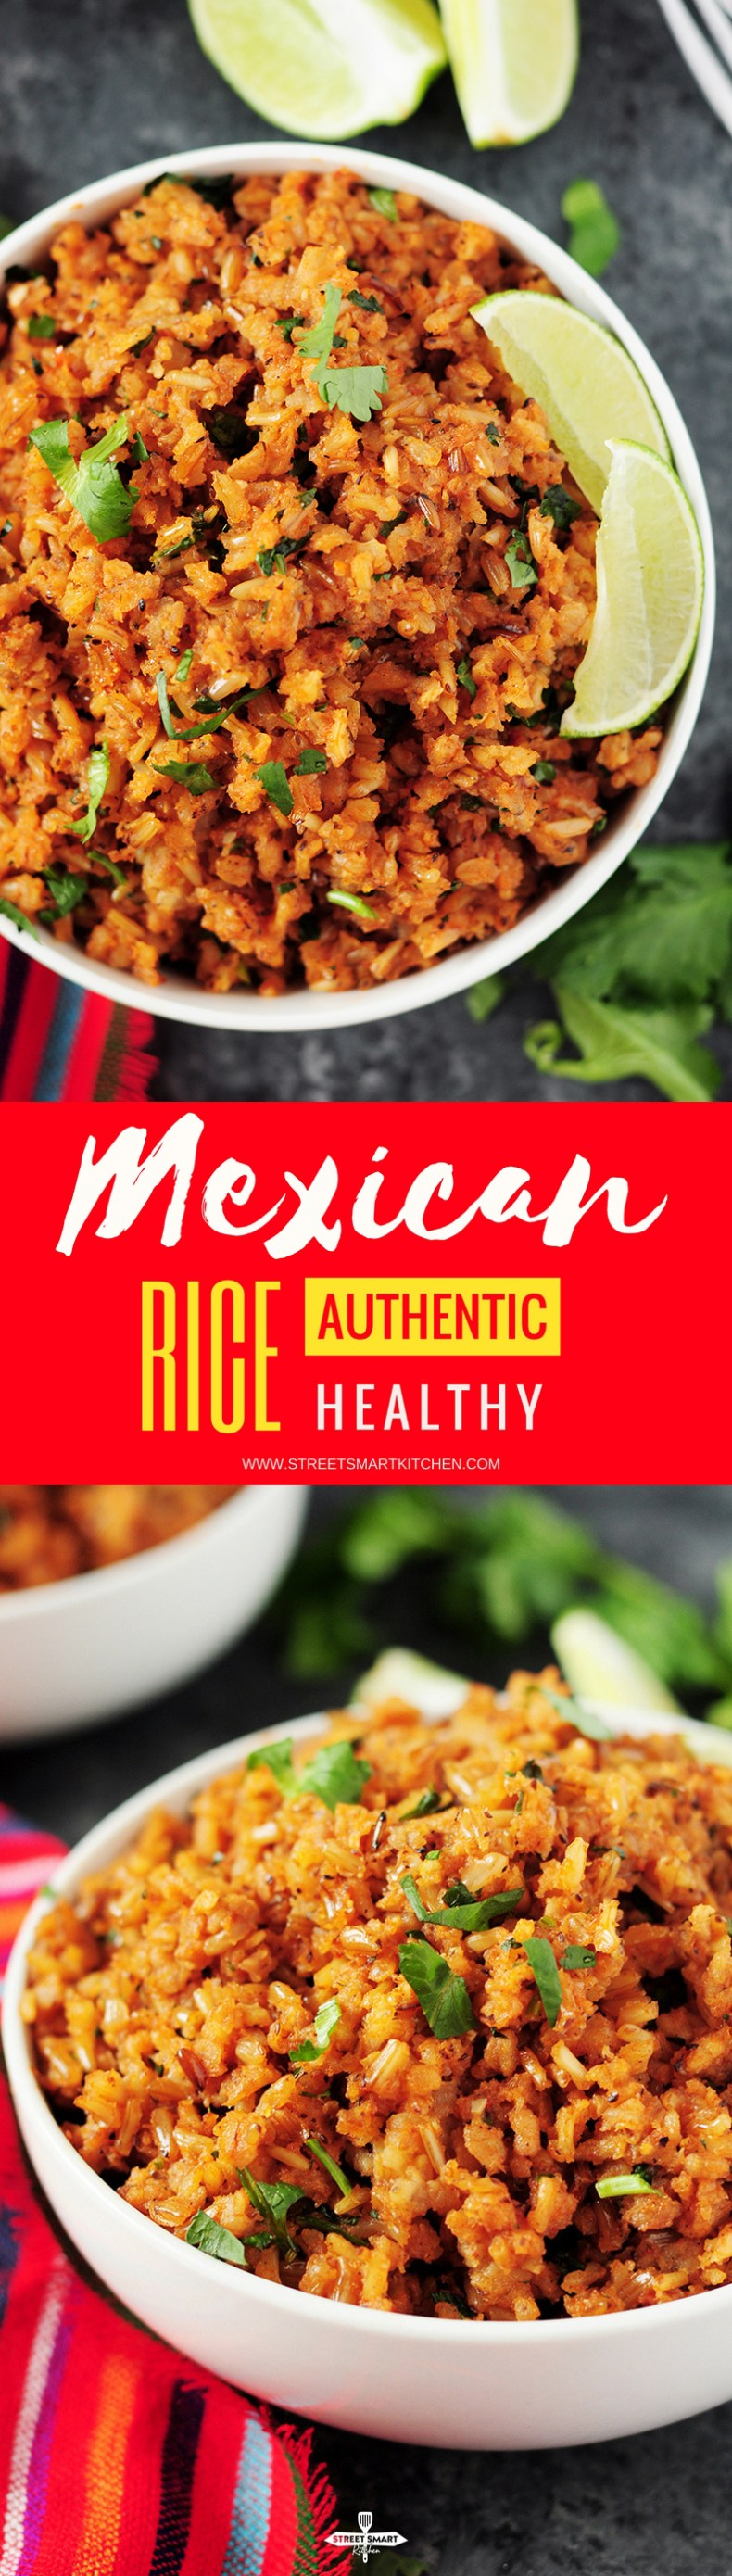 Easy Mexican rice recipe made authentic, healthy, and addictive, plus a step-by-step guide on how to make the best Mexican rice every single time.